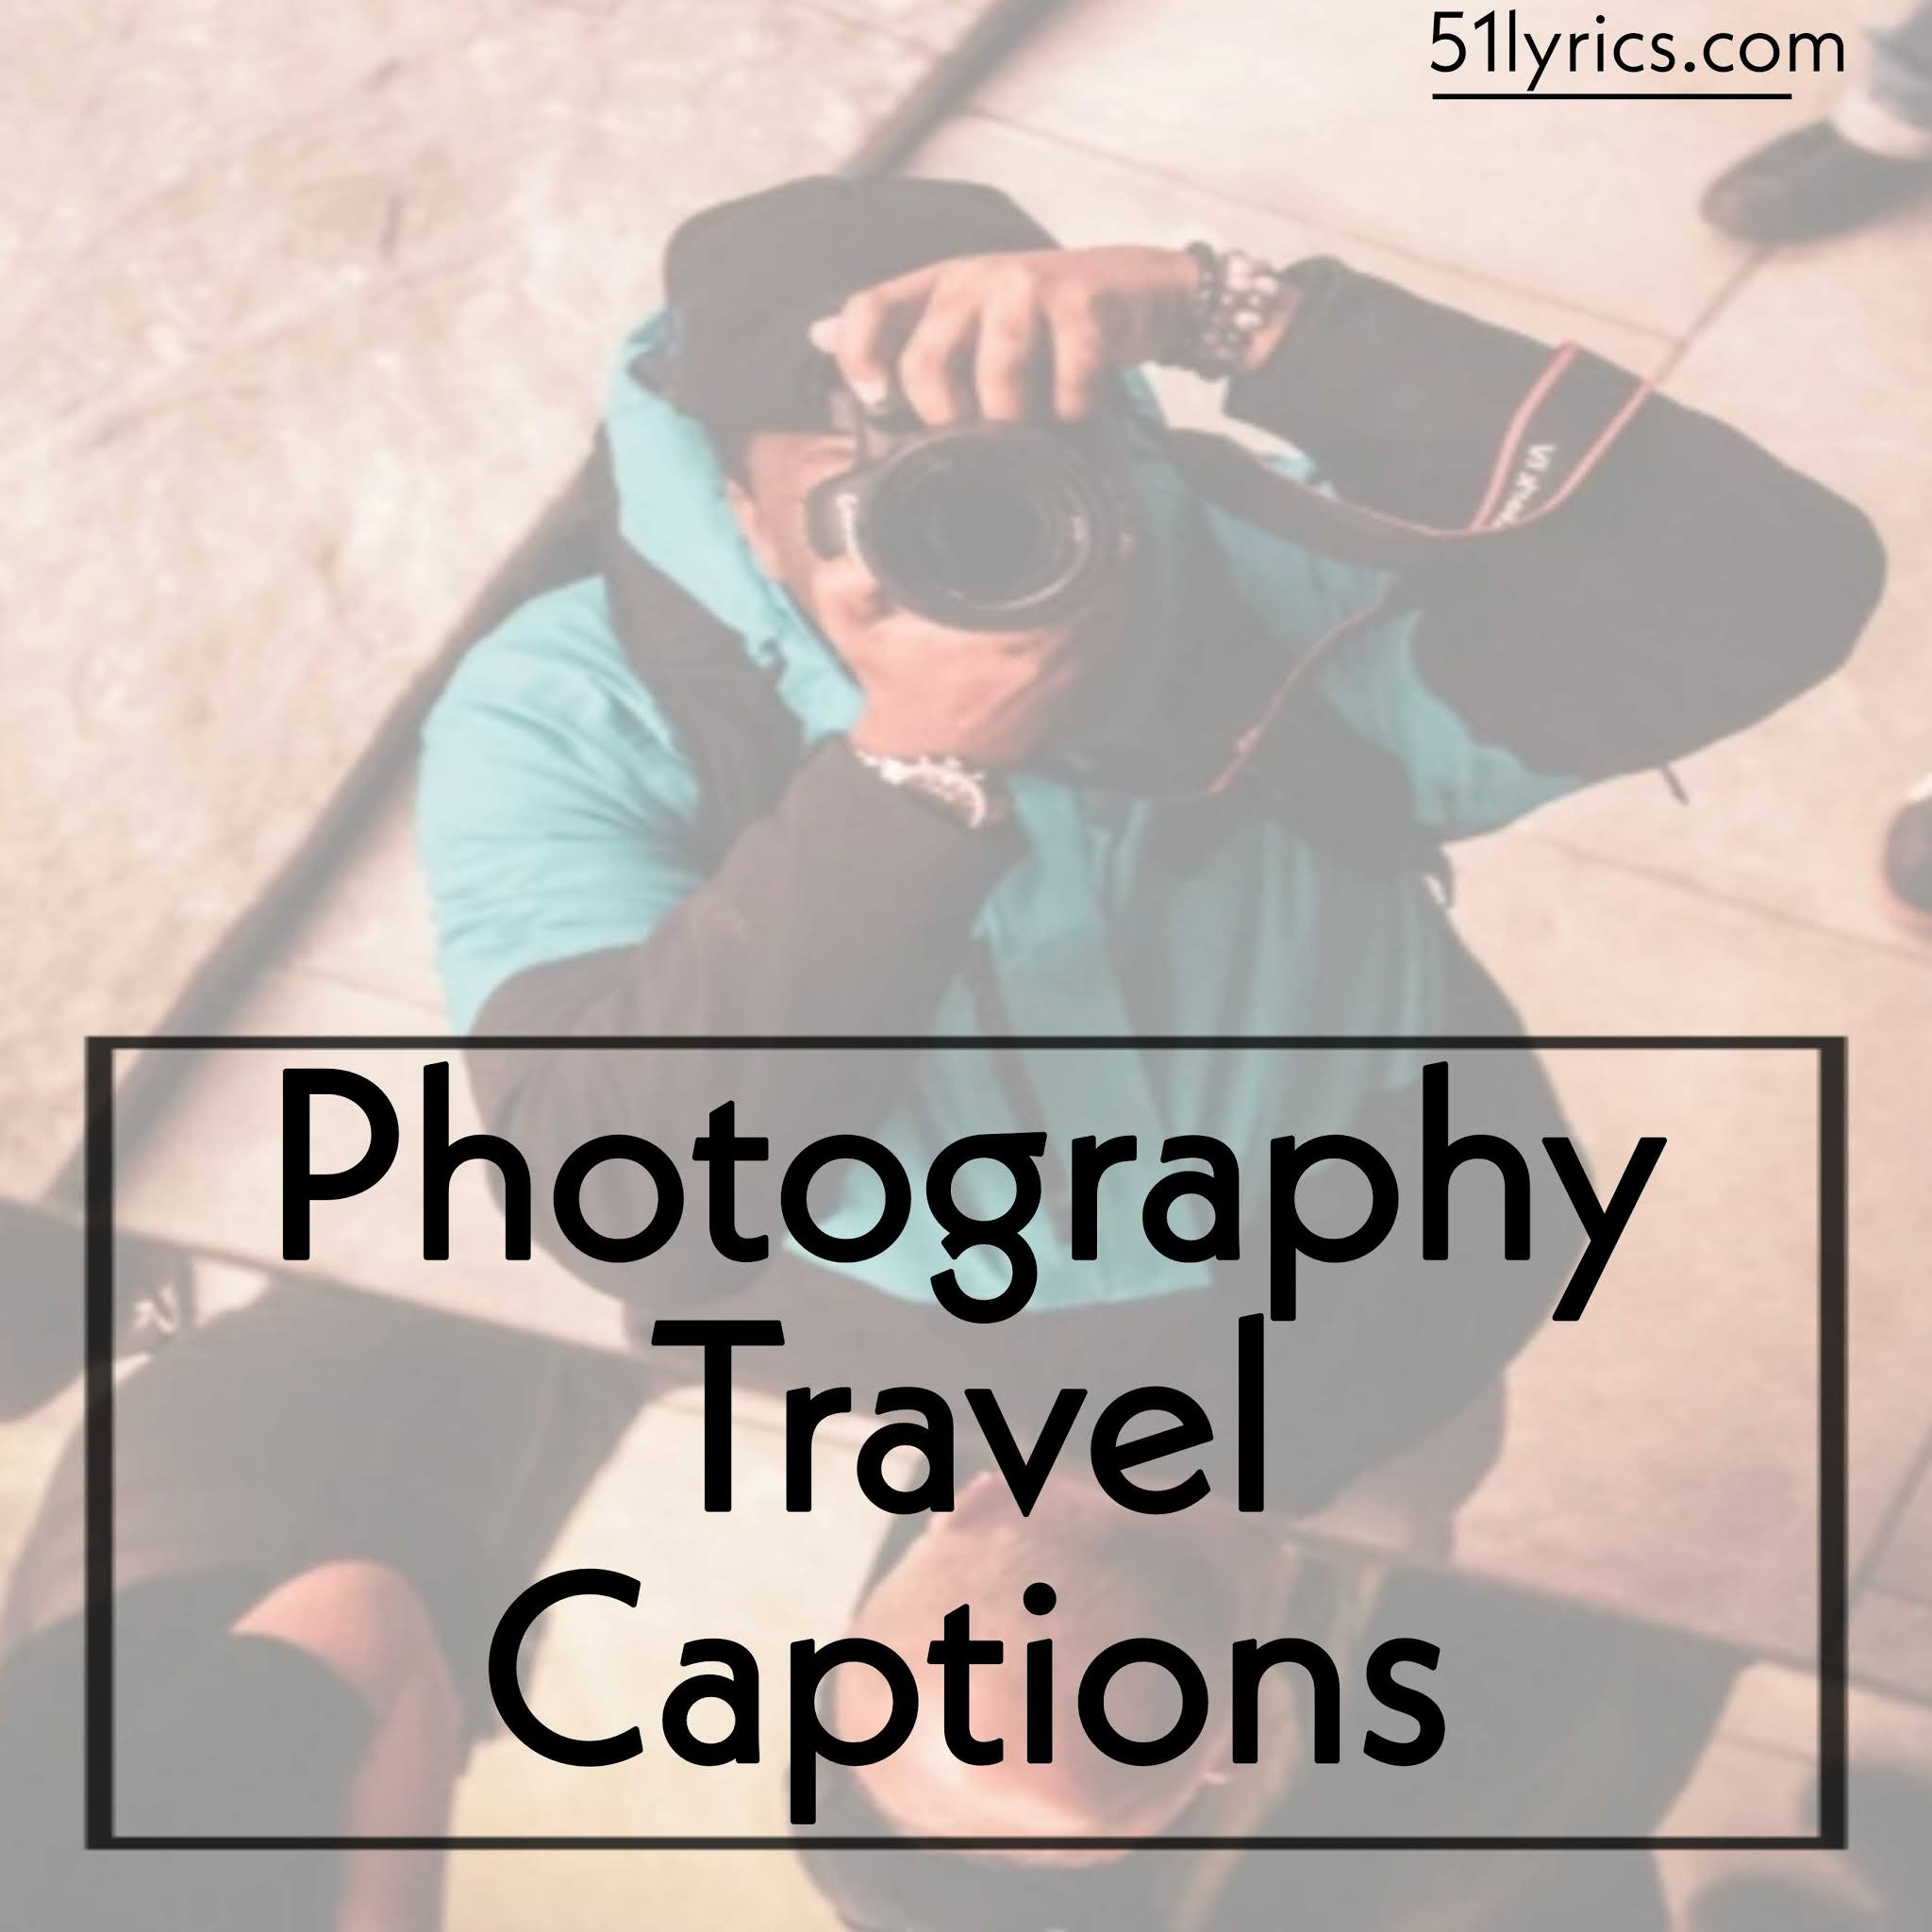 Photography Travel Captions For Instagram, photography memories captions and thoughts